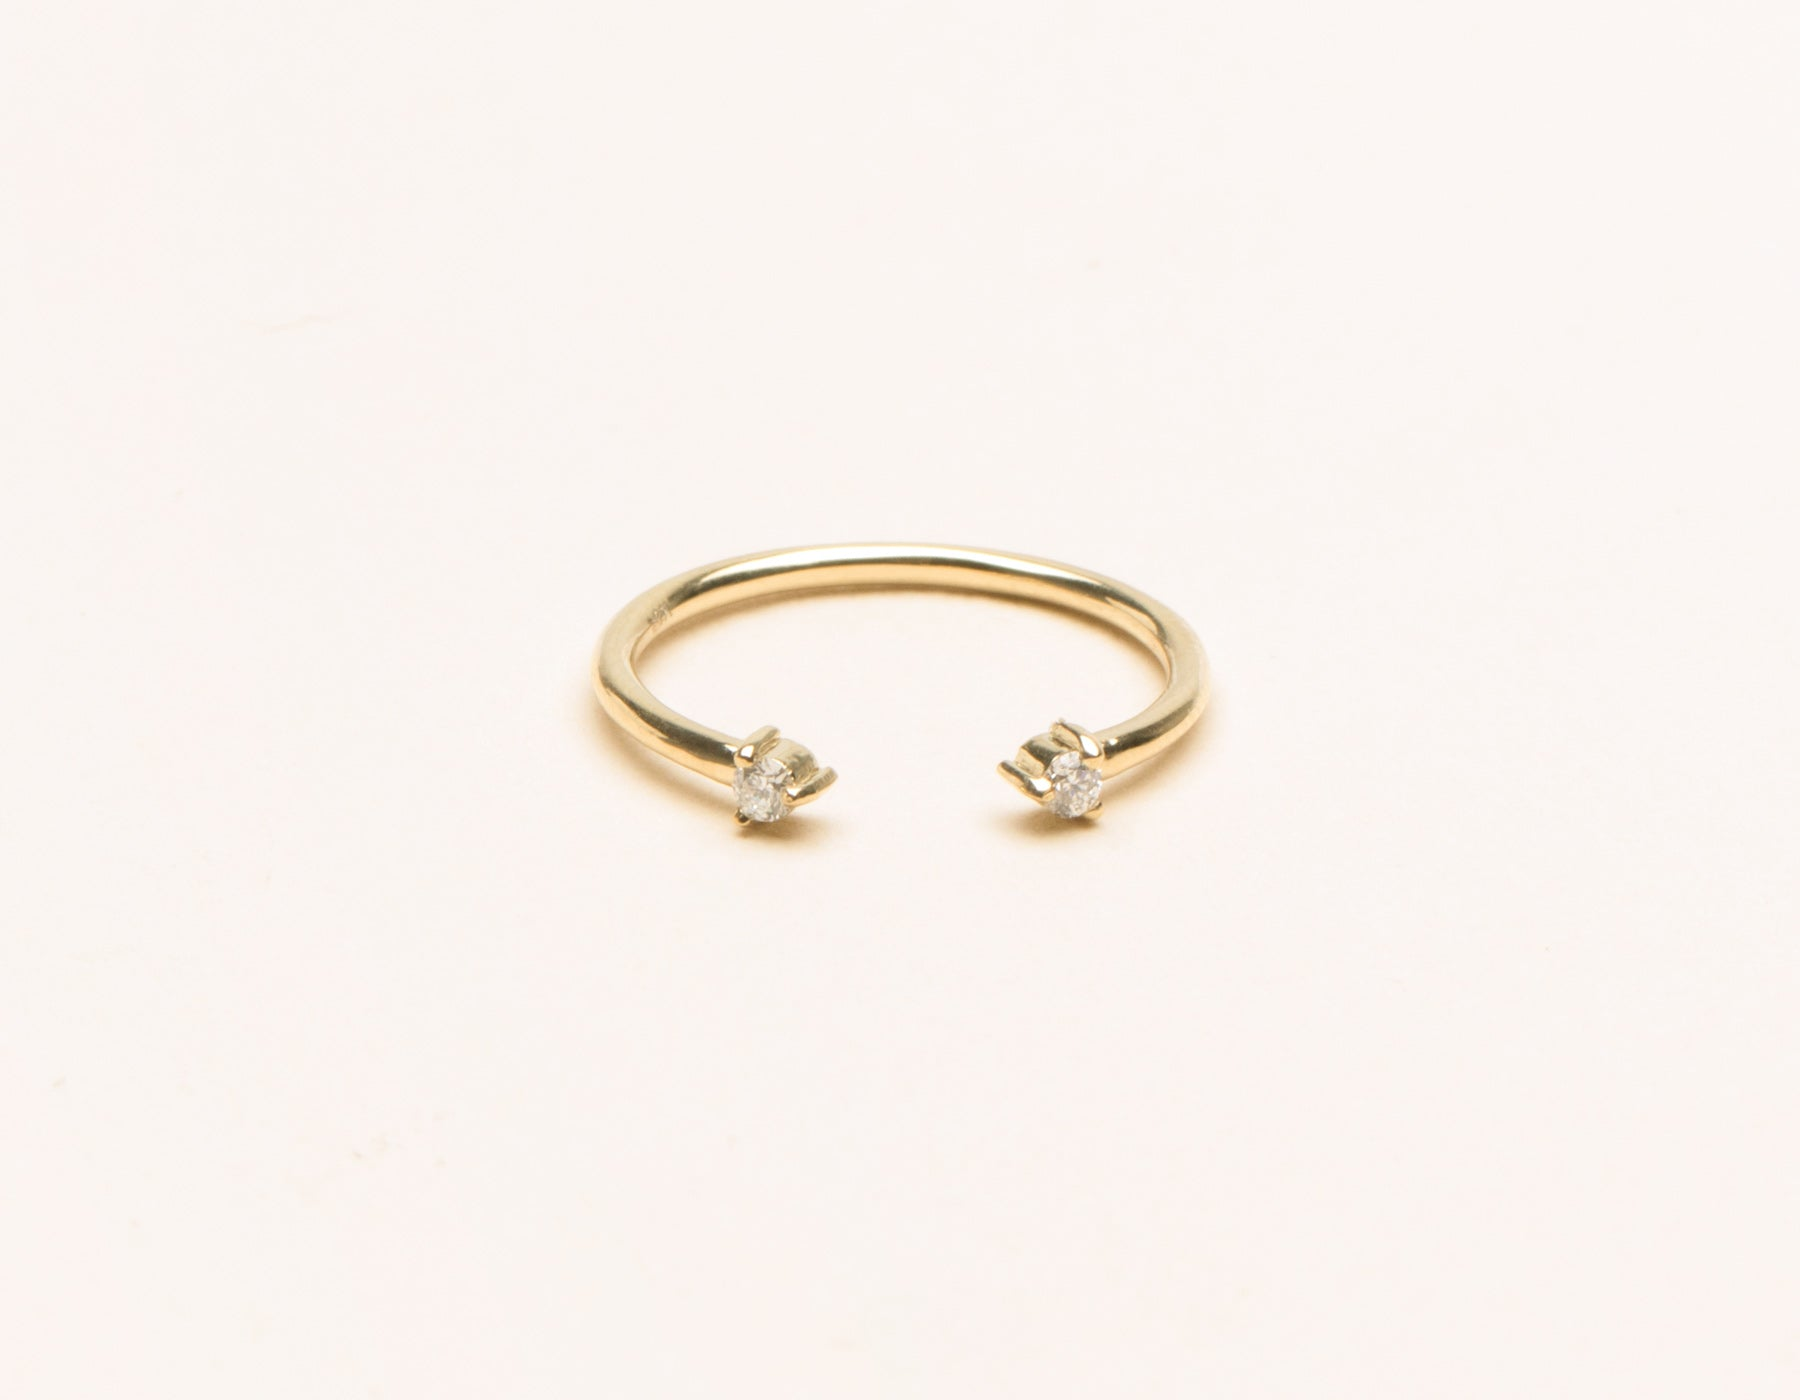 Classic minimalist 14k solid gold small Diamond Dot Cuff stacker ring by Vrai and Oro, 14K Yellow Gold